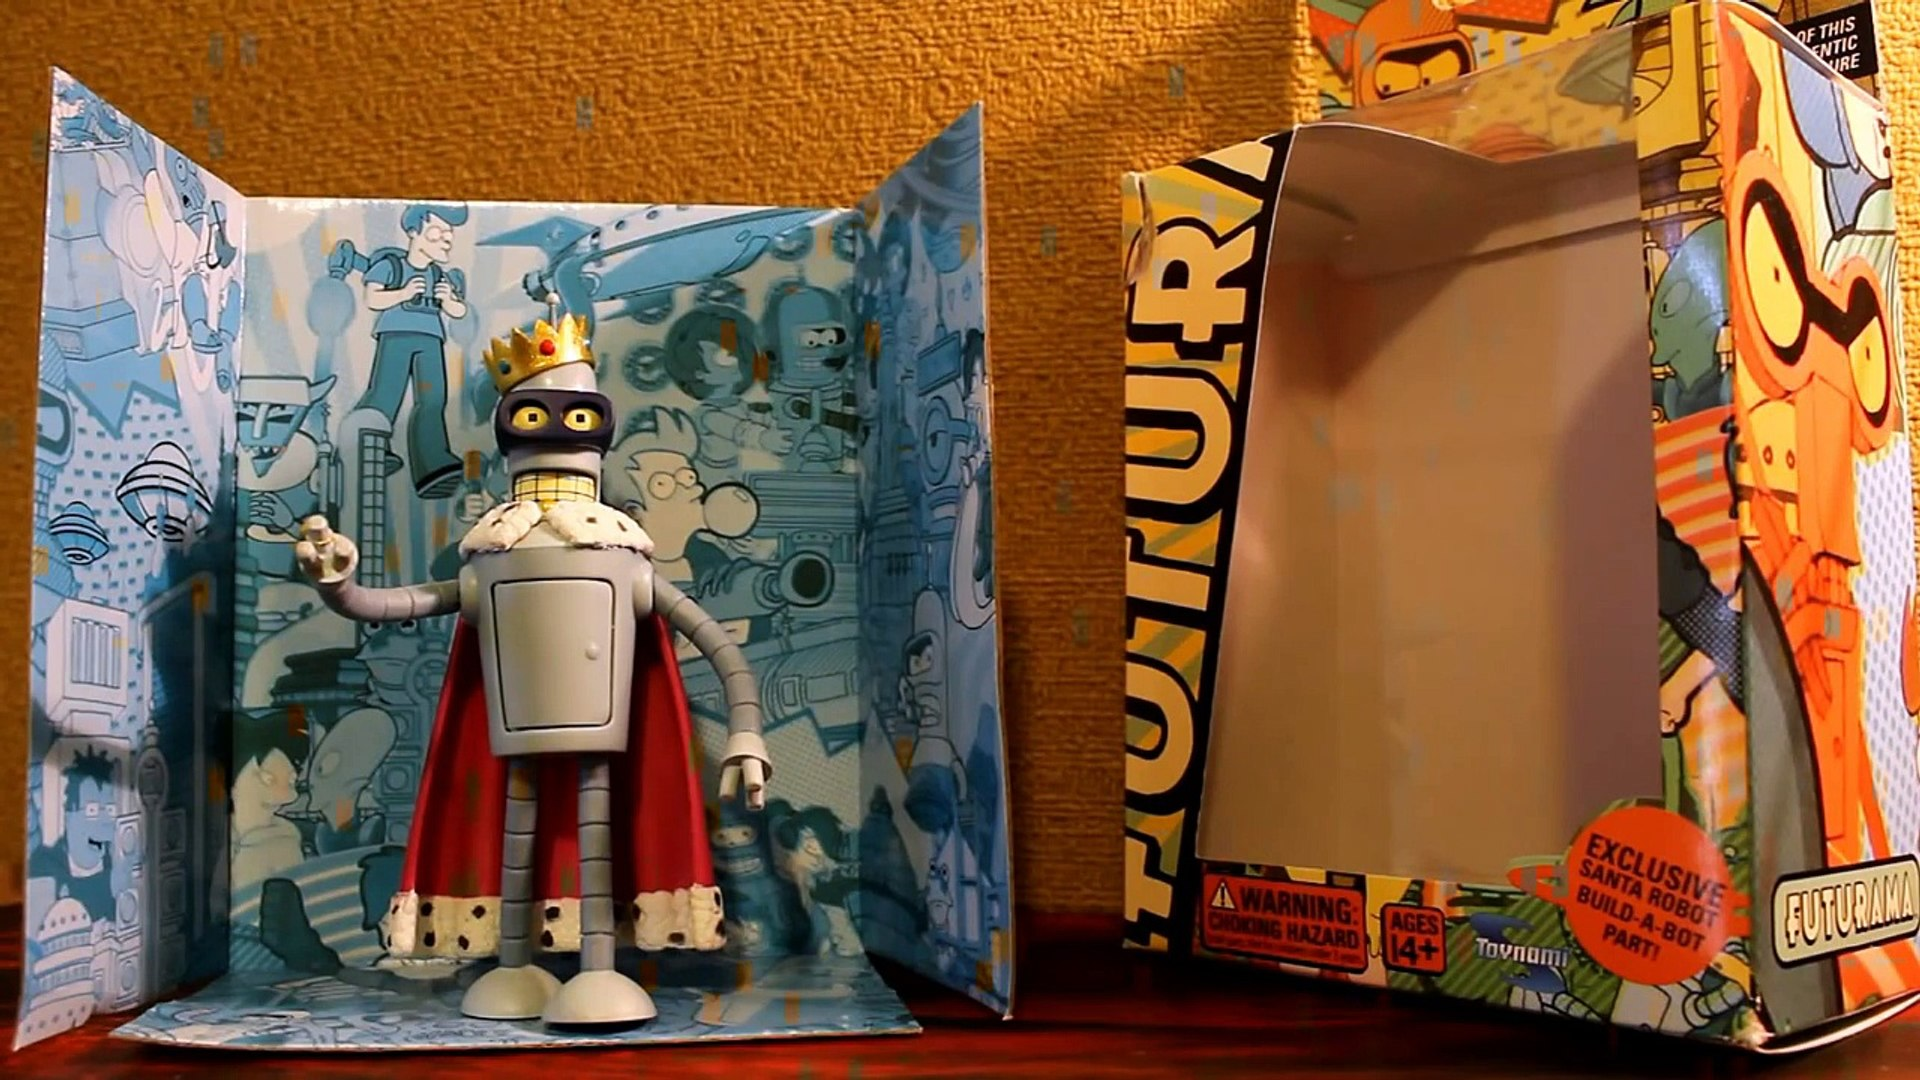 CGR Toys - FUTURAMA SUPER KING! (Bender) Figure Review